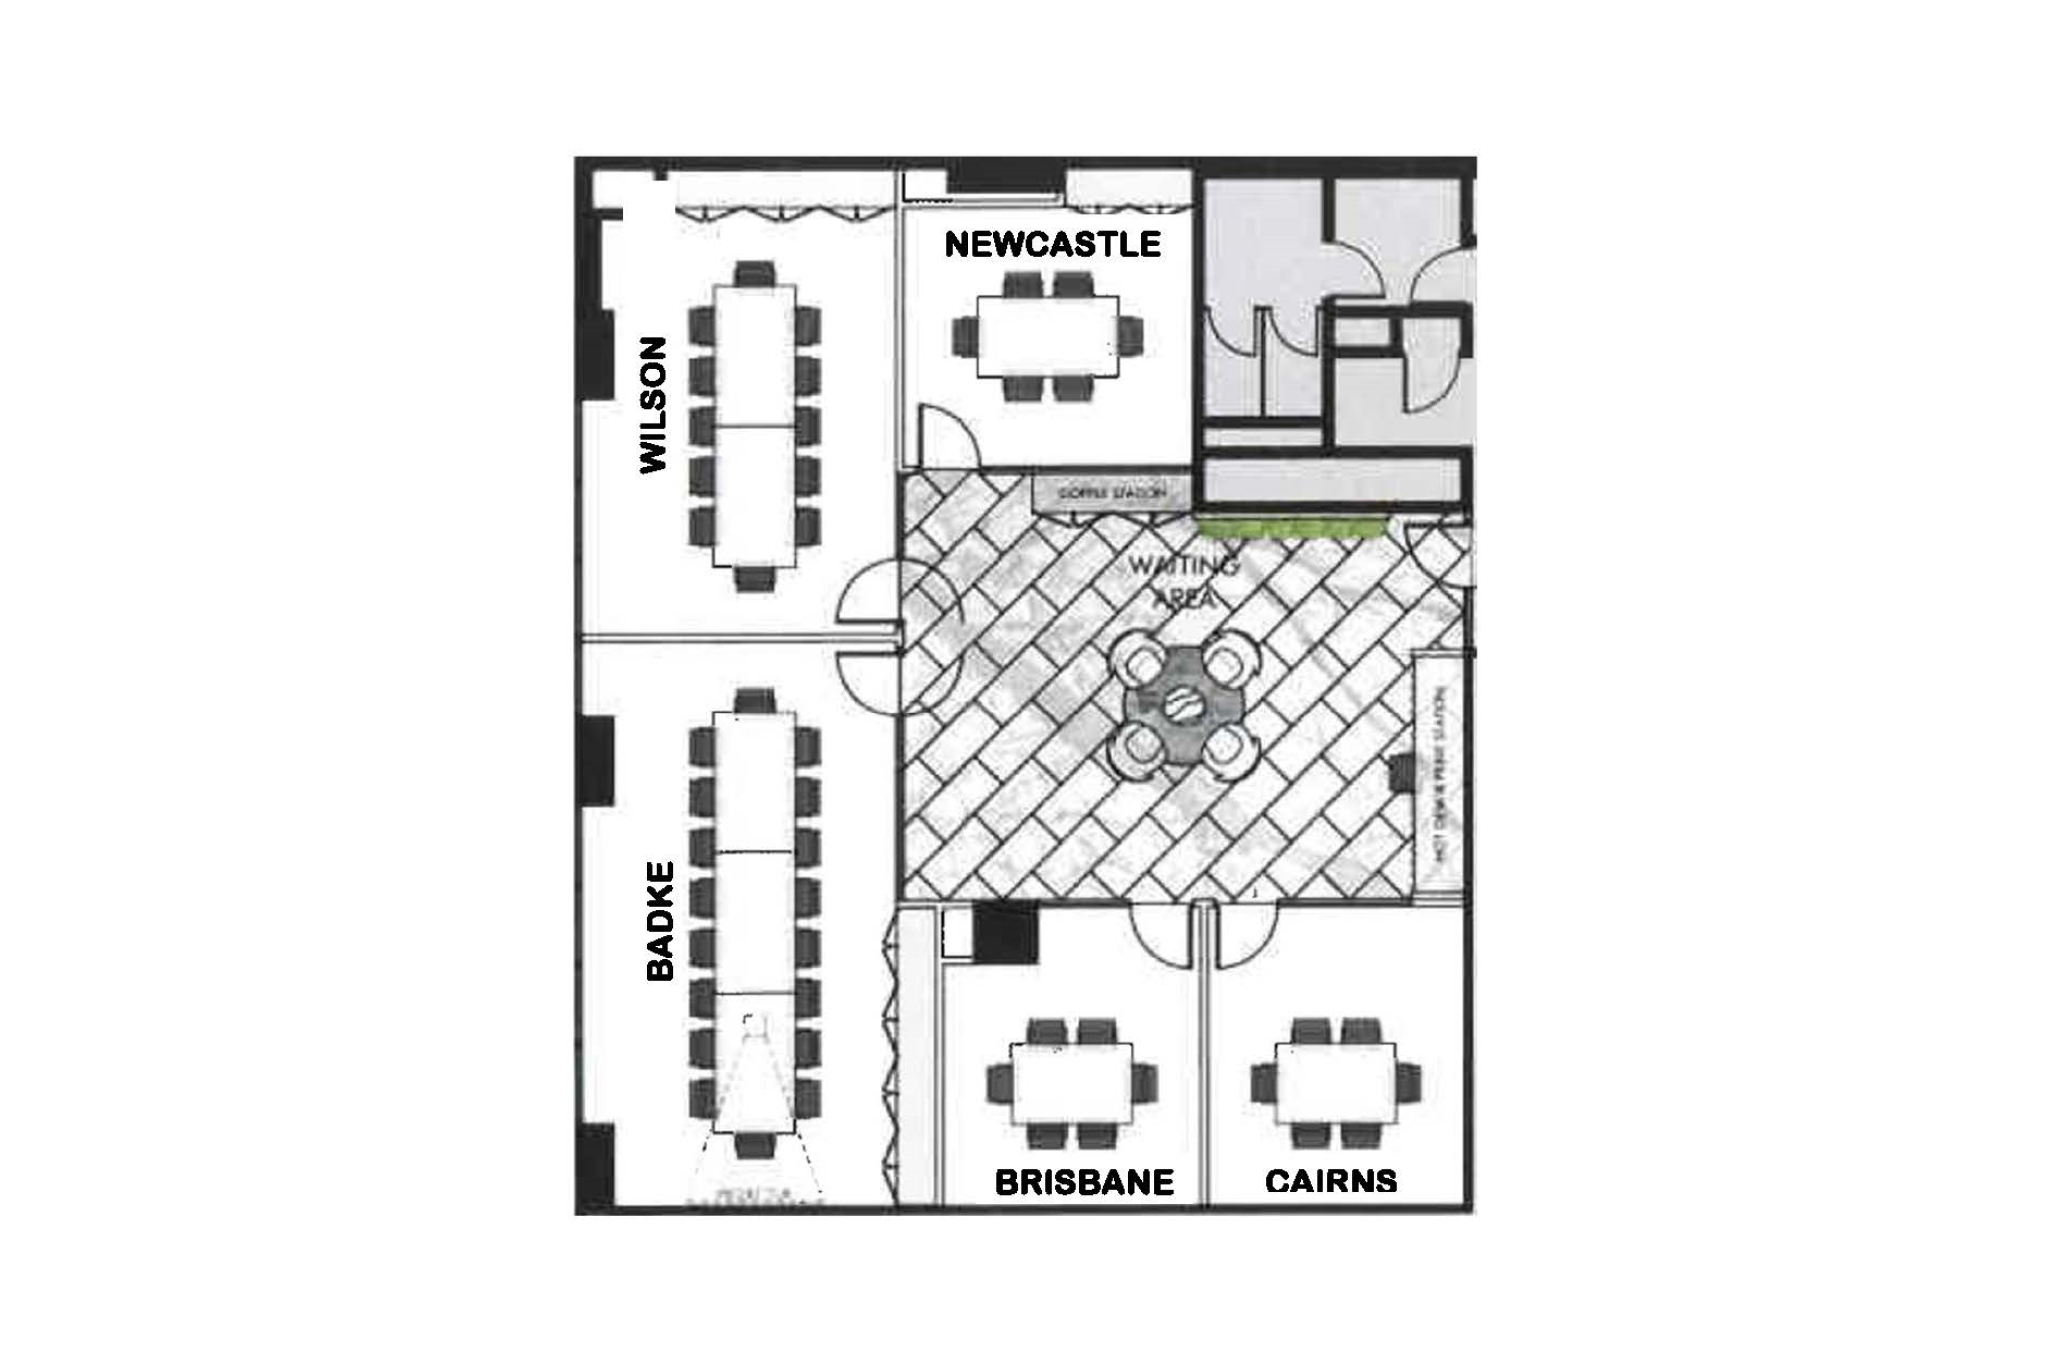 BTLawyers Level 25 Mediation Rooms Floor Plan